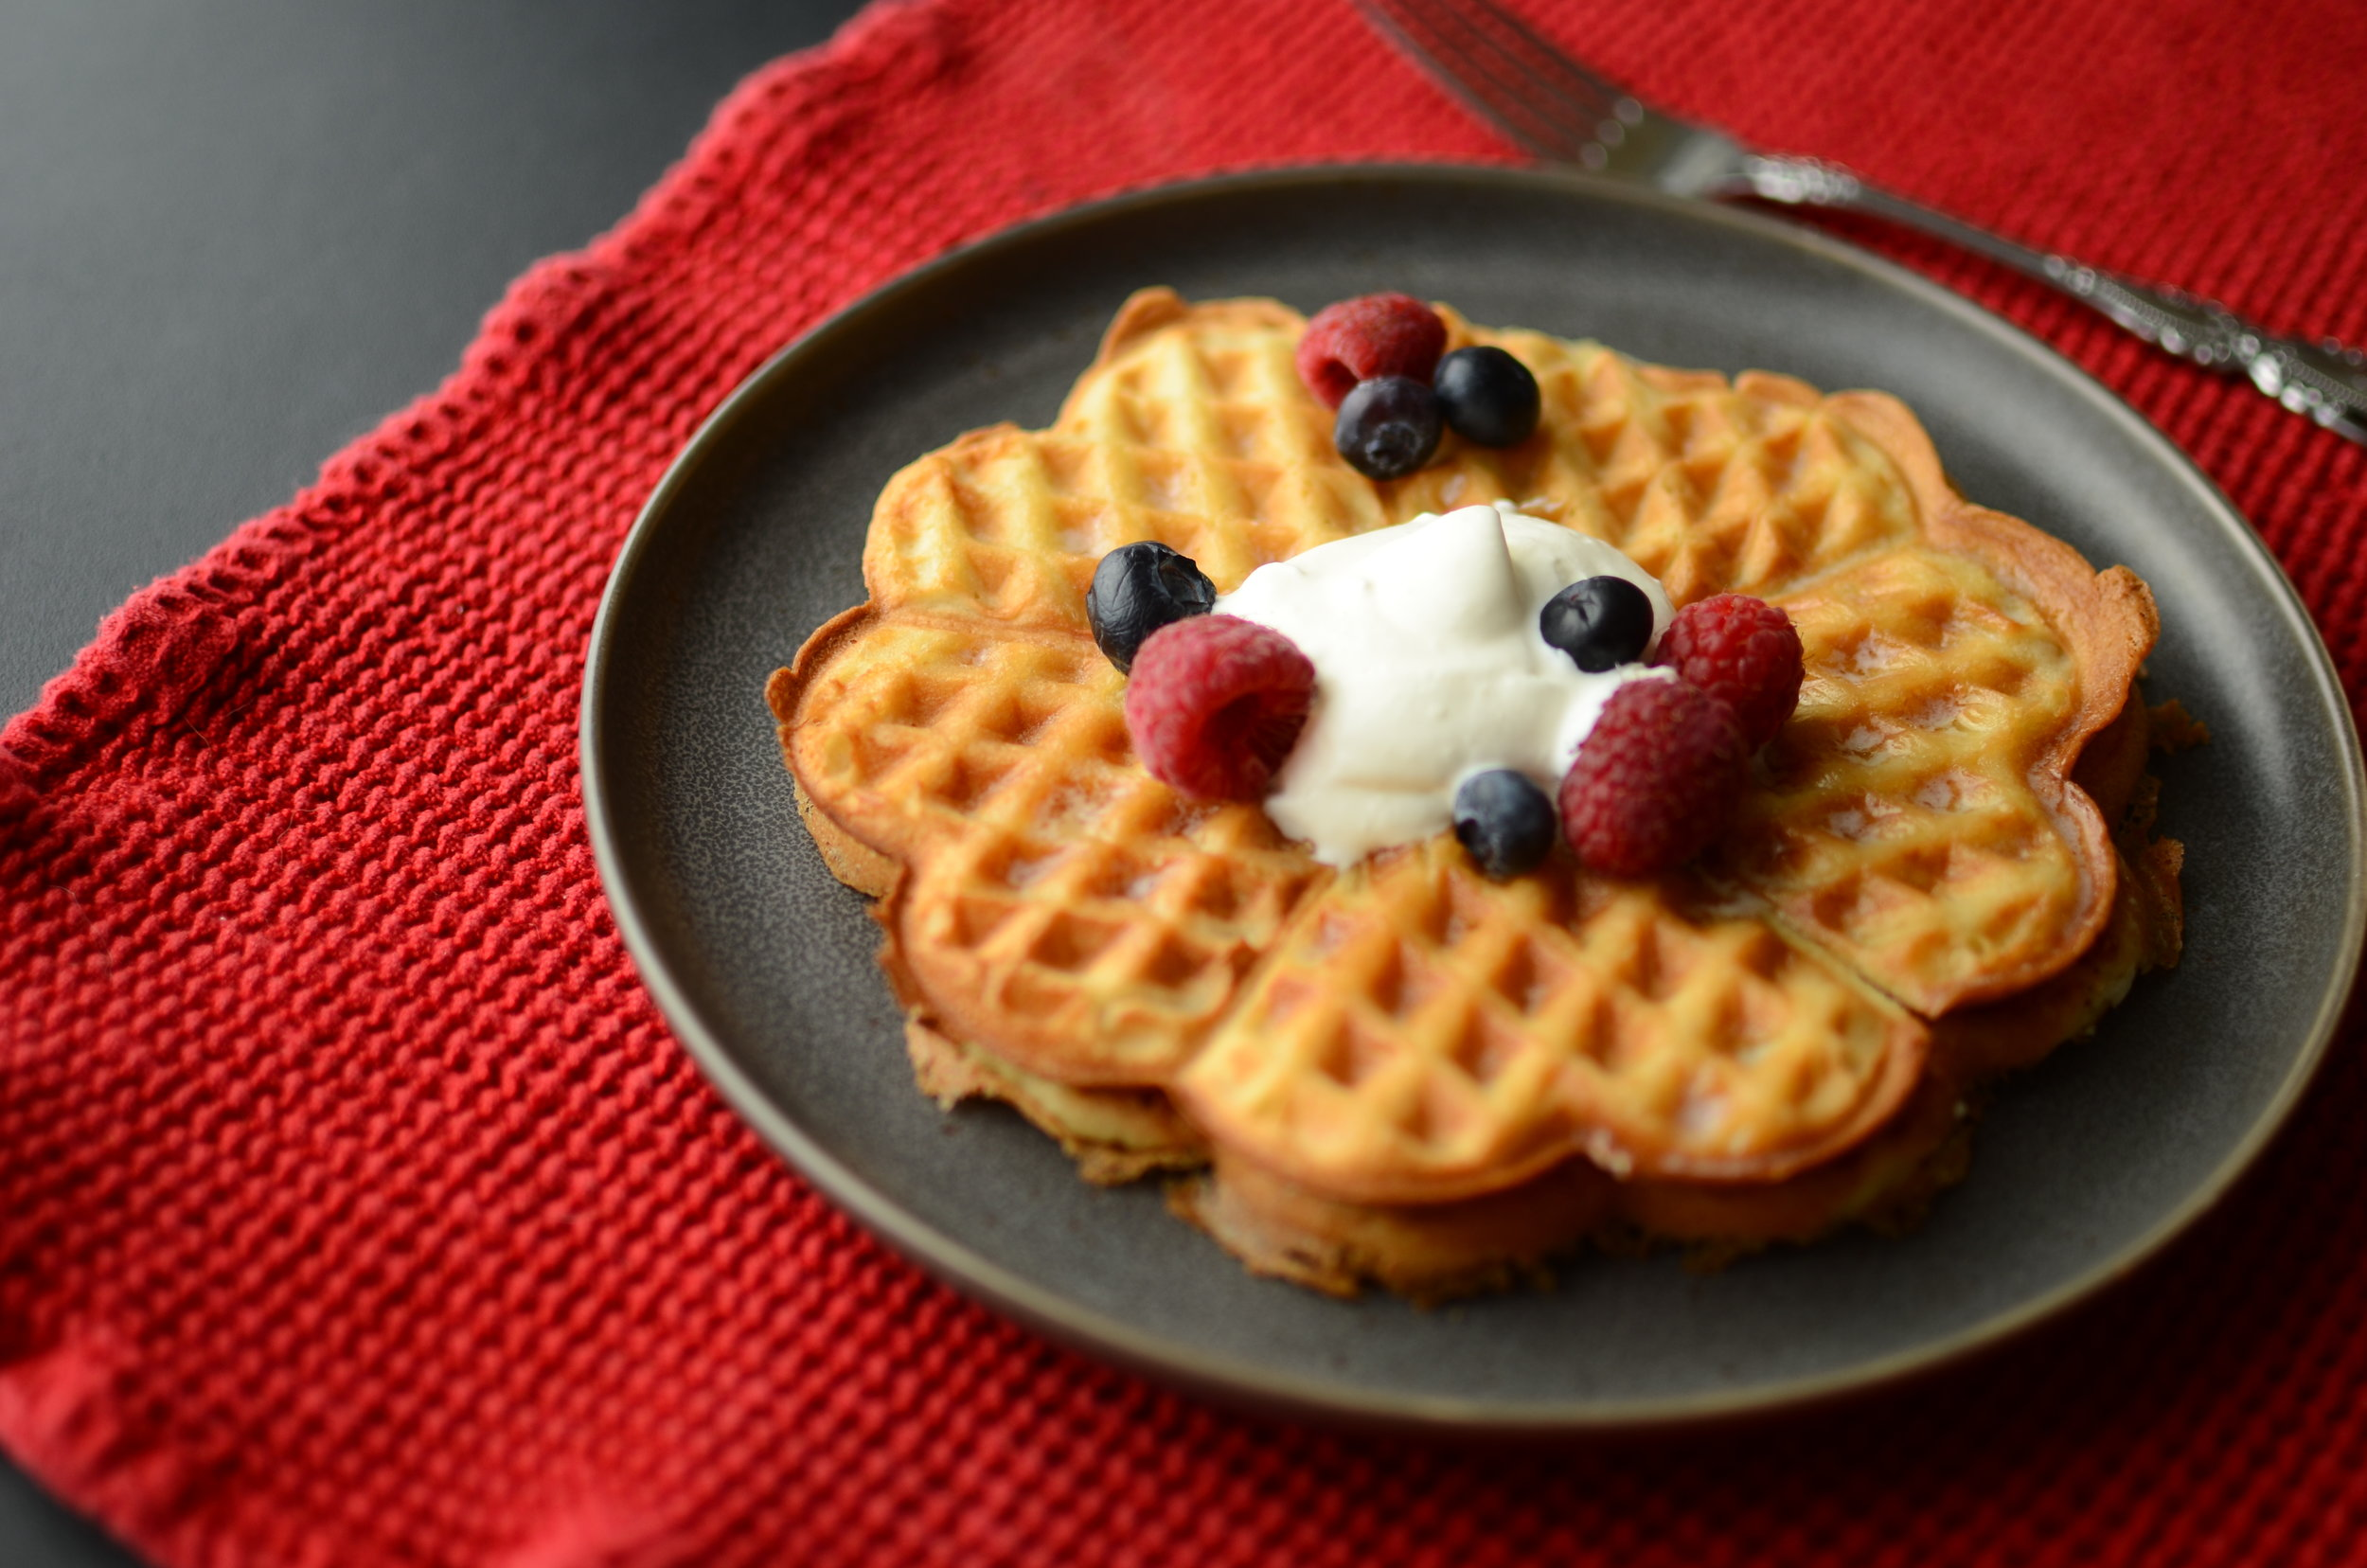 Keto Waffles - ButterYum — how to make Keto-friendly waffles. keto waffle recipe. recipe for keto waffles. can I eat waffles on keto? keto waffle mix recipe. waffles keto. waffles keto almond flour. keto waffles almond flour. keto breakfast. keto breakfast recipes. keto breakfast ideas. almond meal waffles. almond waffle recipe.